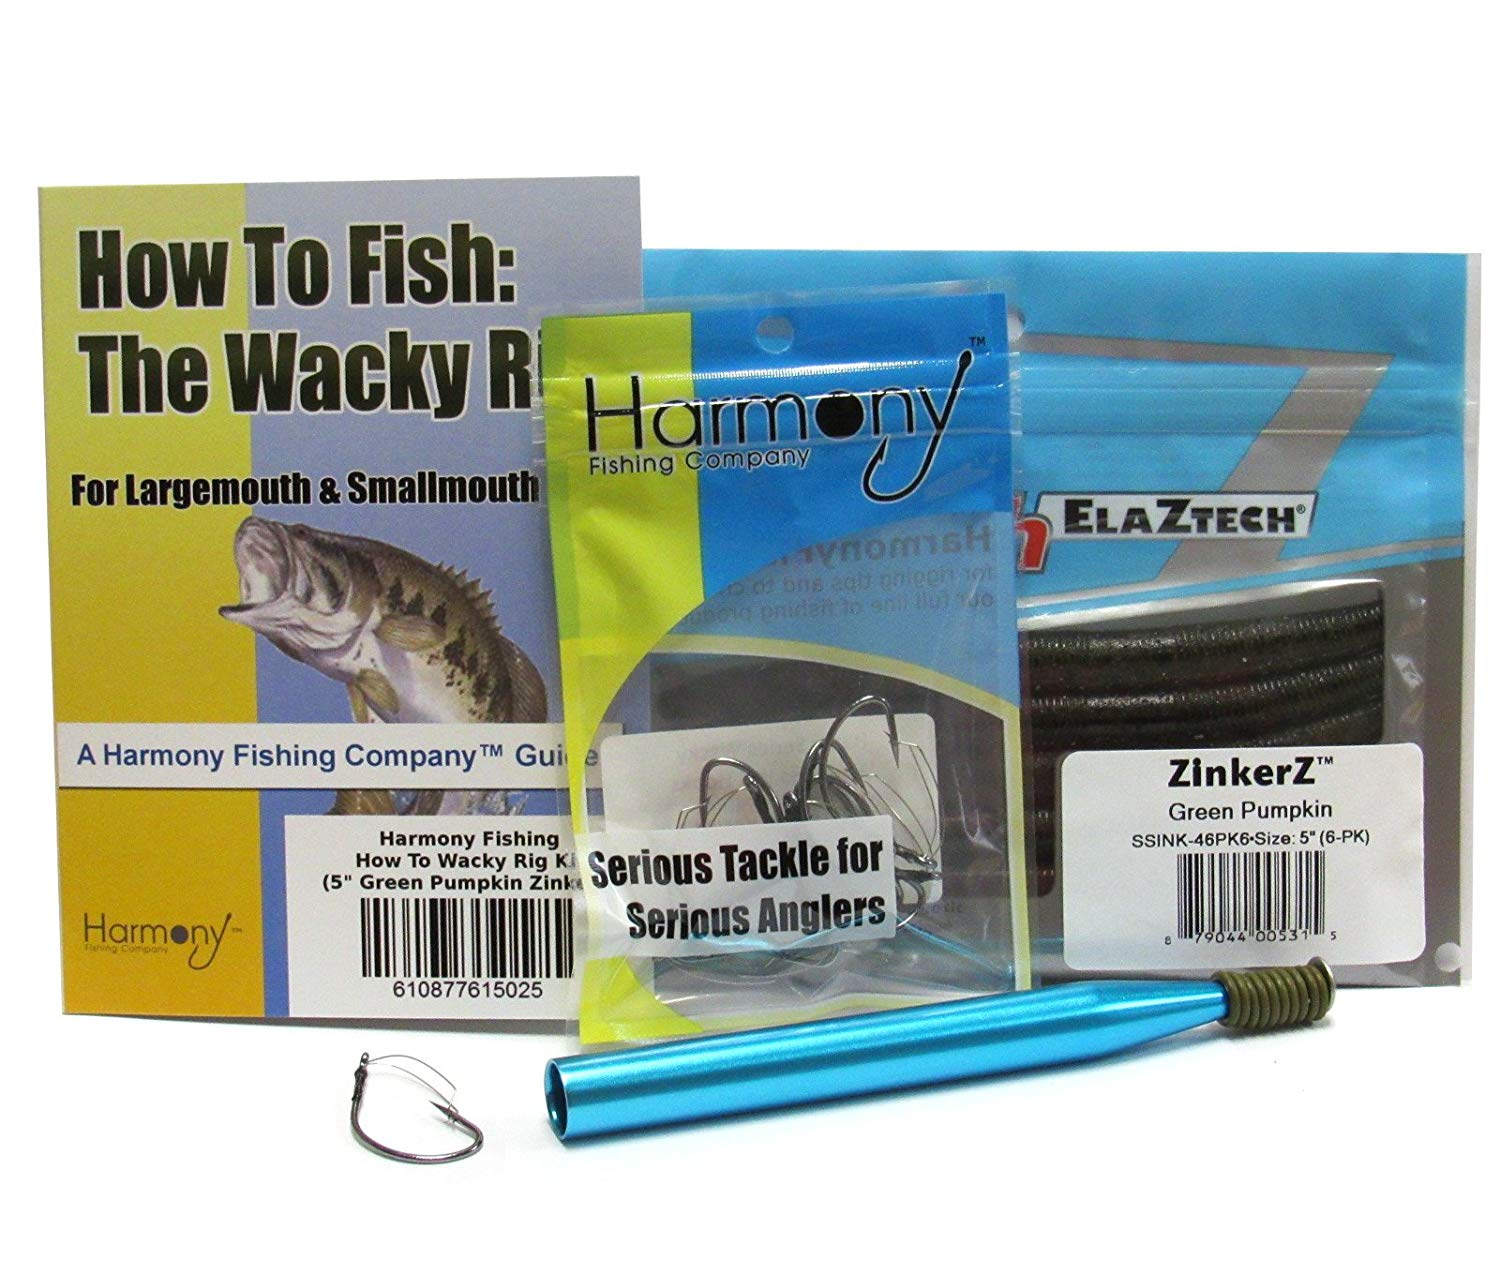 Wacky Rig Kit - Z-Man ZinkerZ 6pk + Wacky Weedless Hooks 10pk + Wacky Tool w/10 Wacky Rings + How To Fish The Wacky Worm Guide (Green Pumpkin)